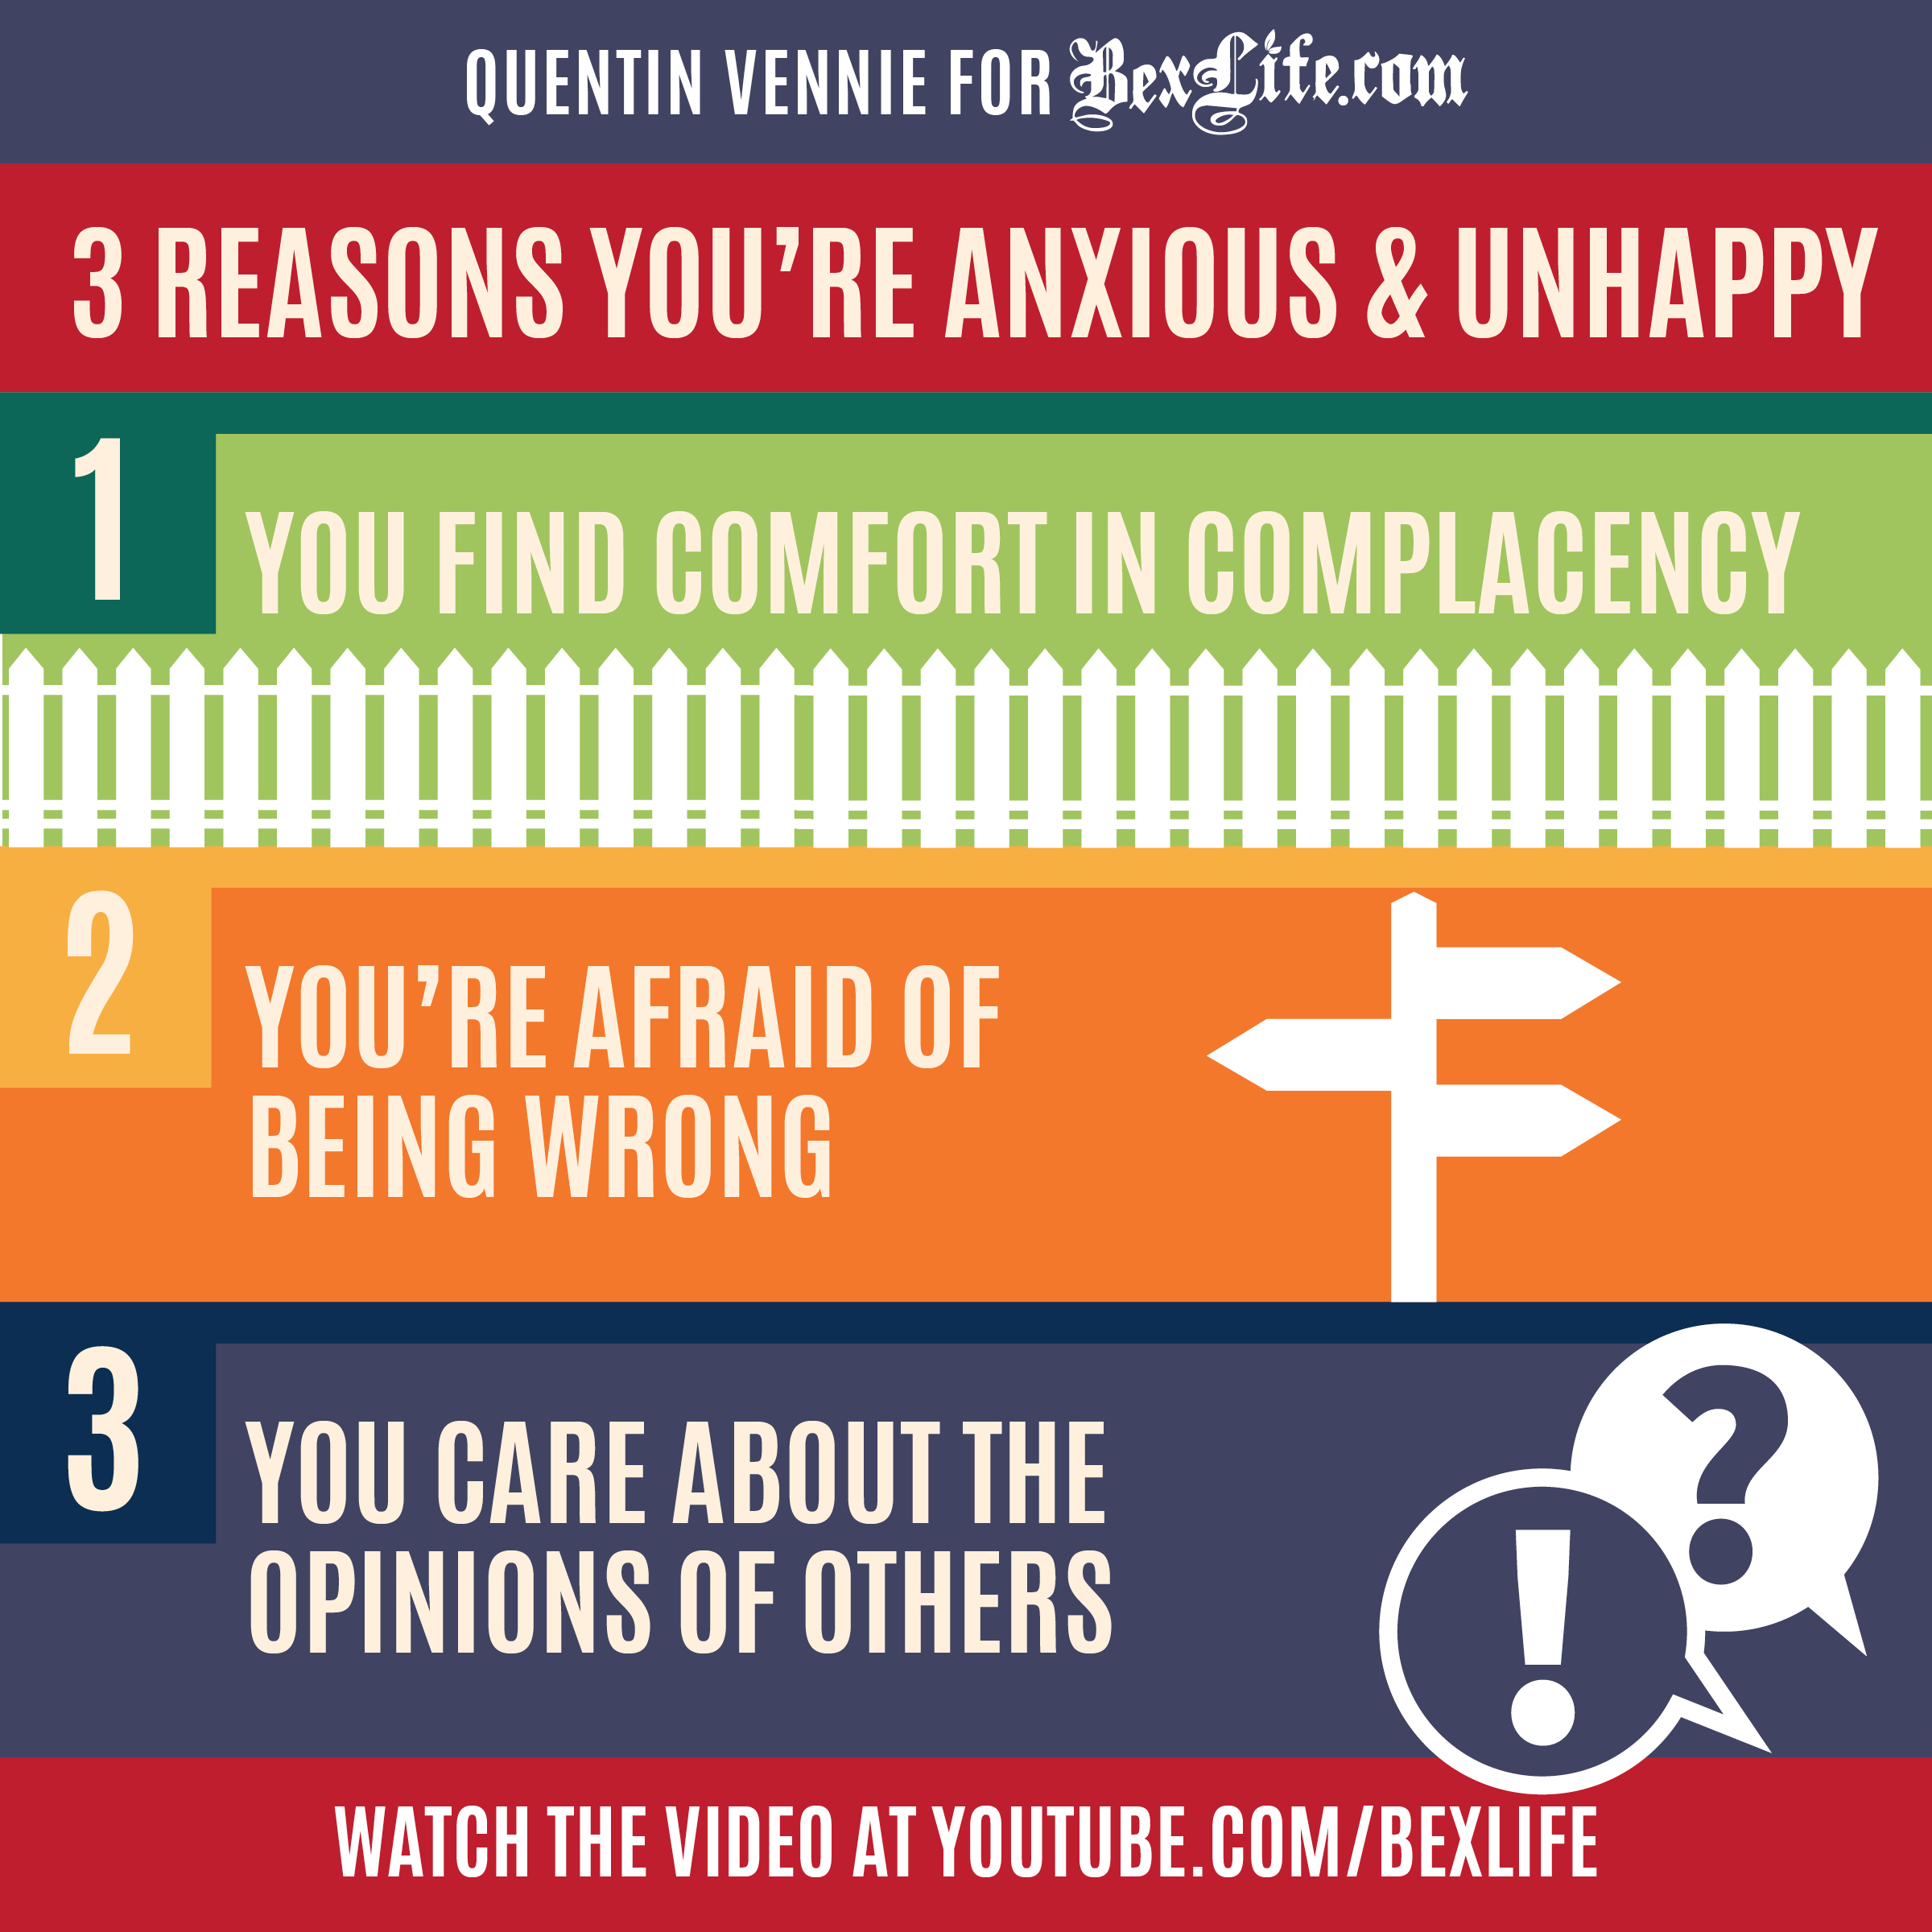 what causes unhappiness in life